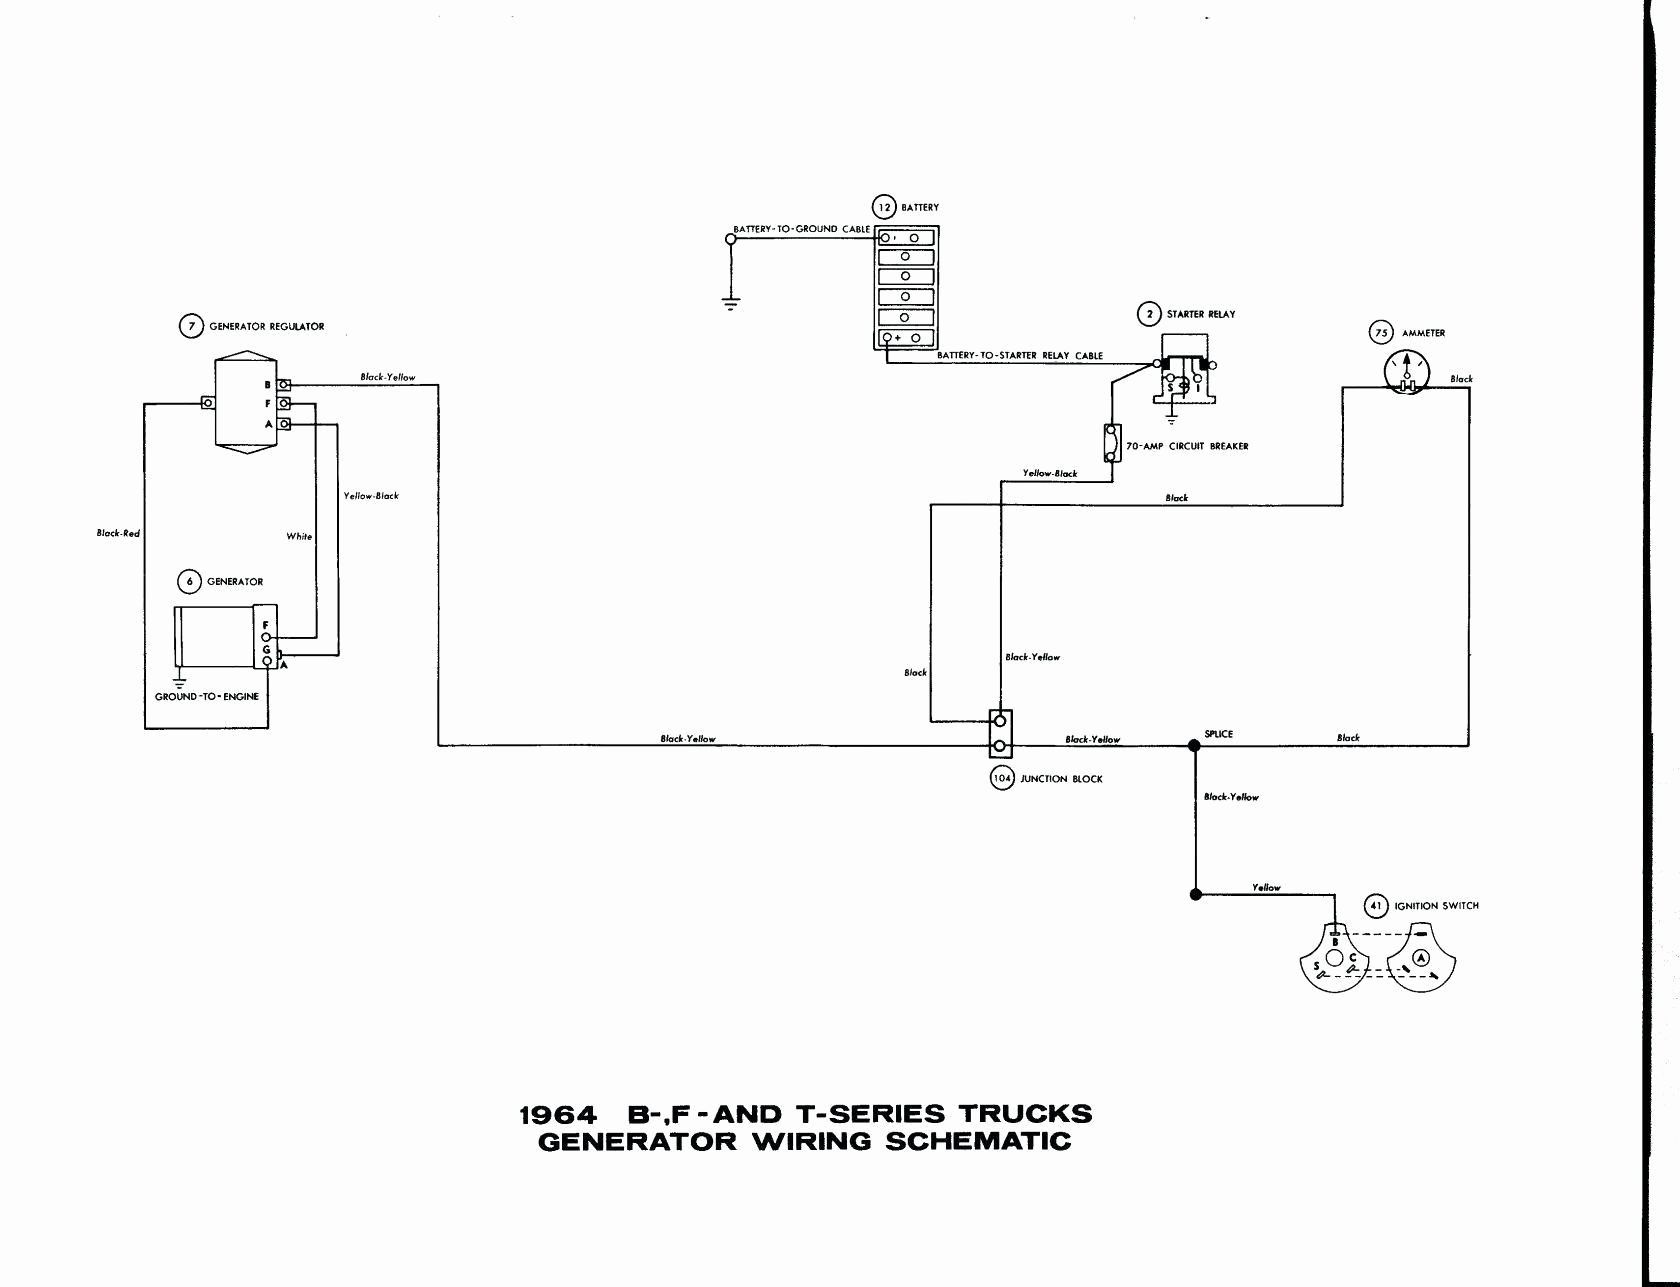 Unique Wiring Plan Diagram Wiringdiagram Diagramming Diagramm Visuals Visualisation Graphical Check More At Https The Diagram Alternator Diagram Chart